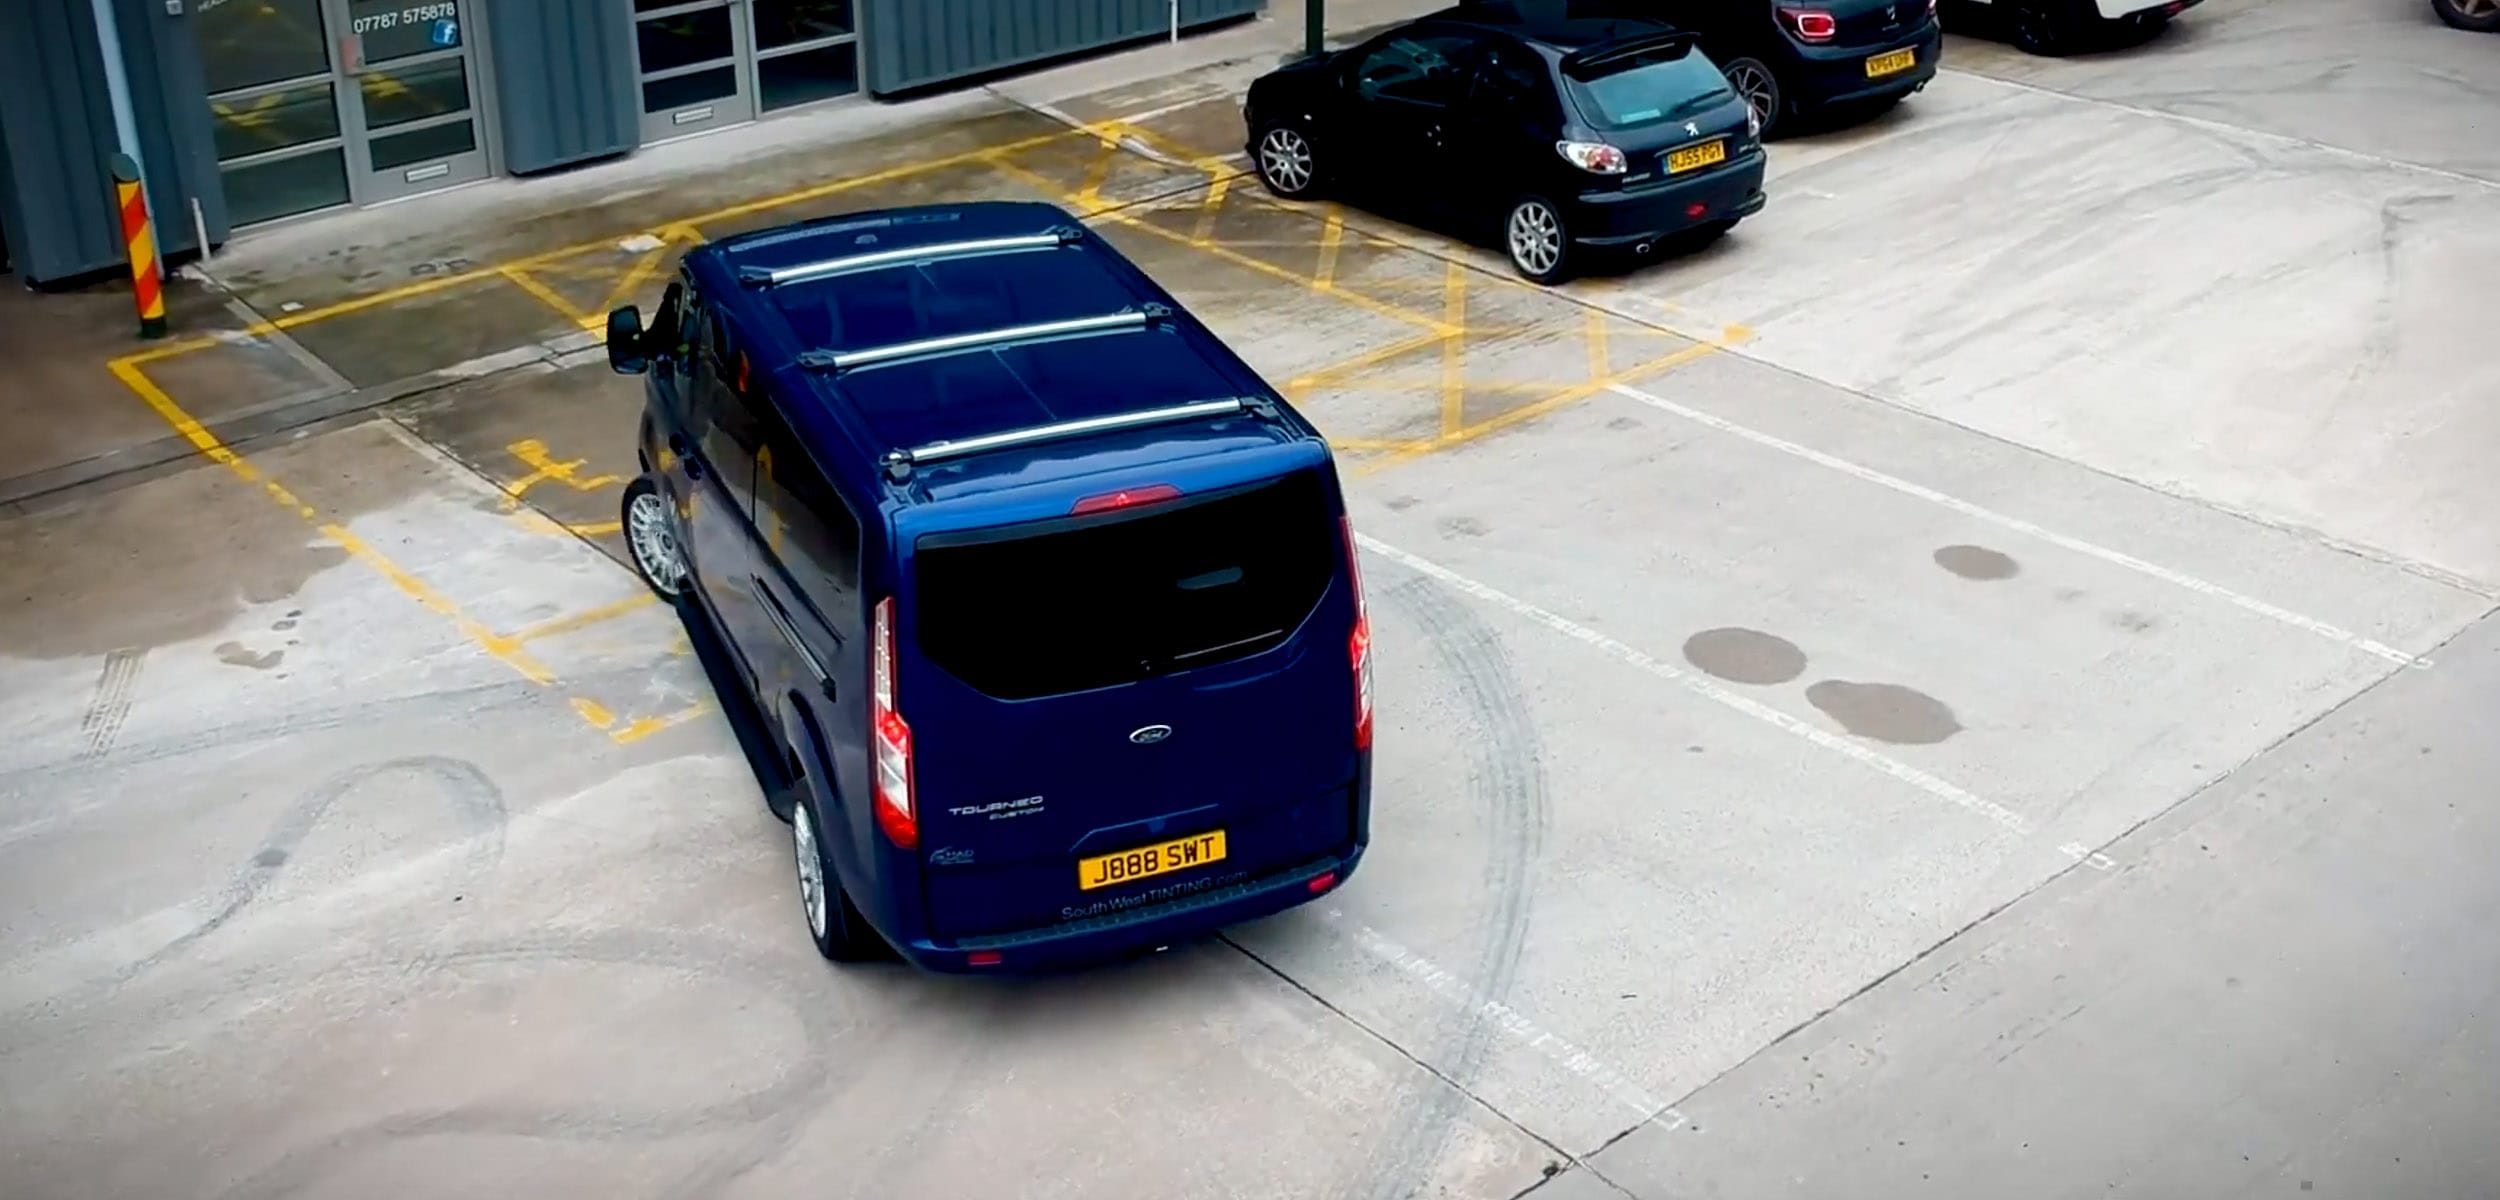 South West Tinting Van